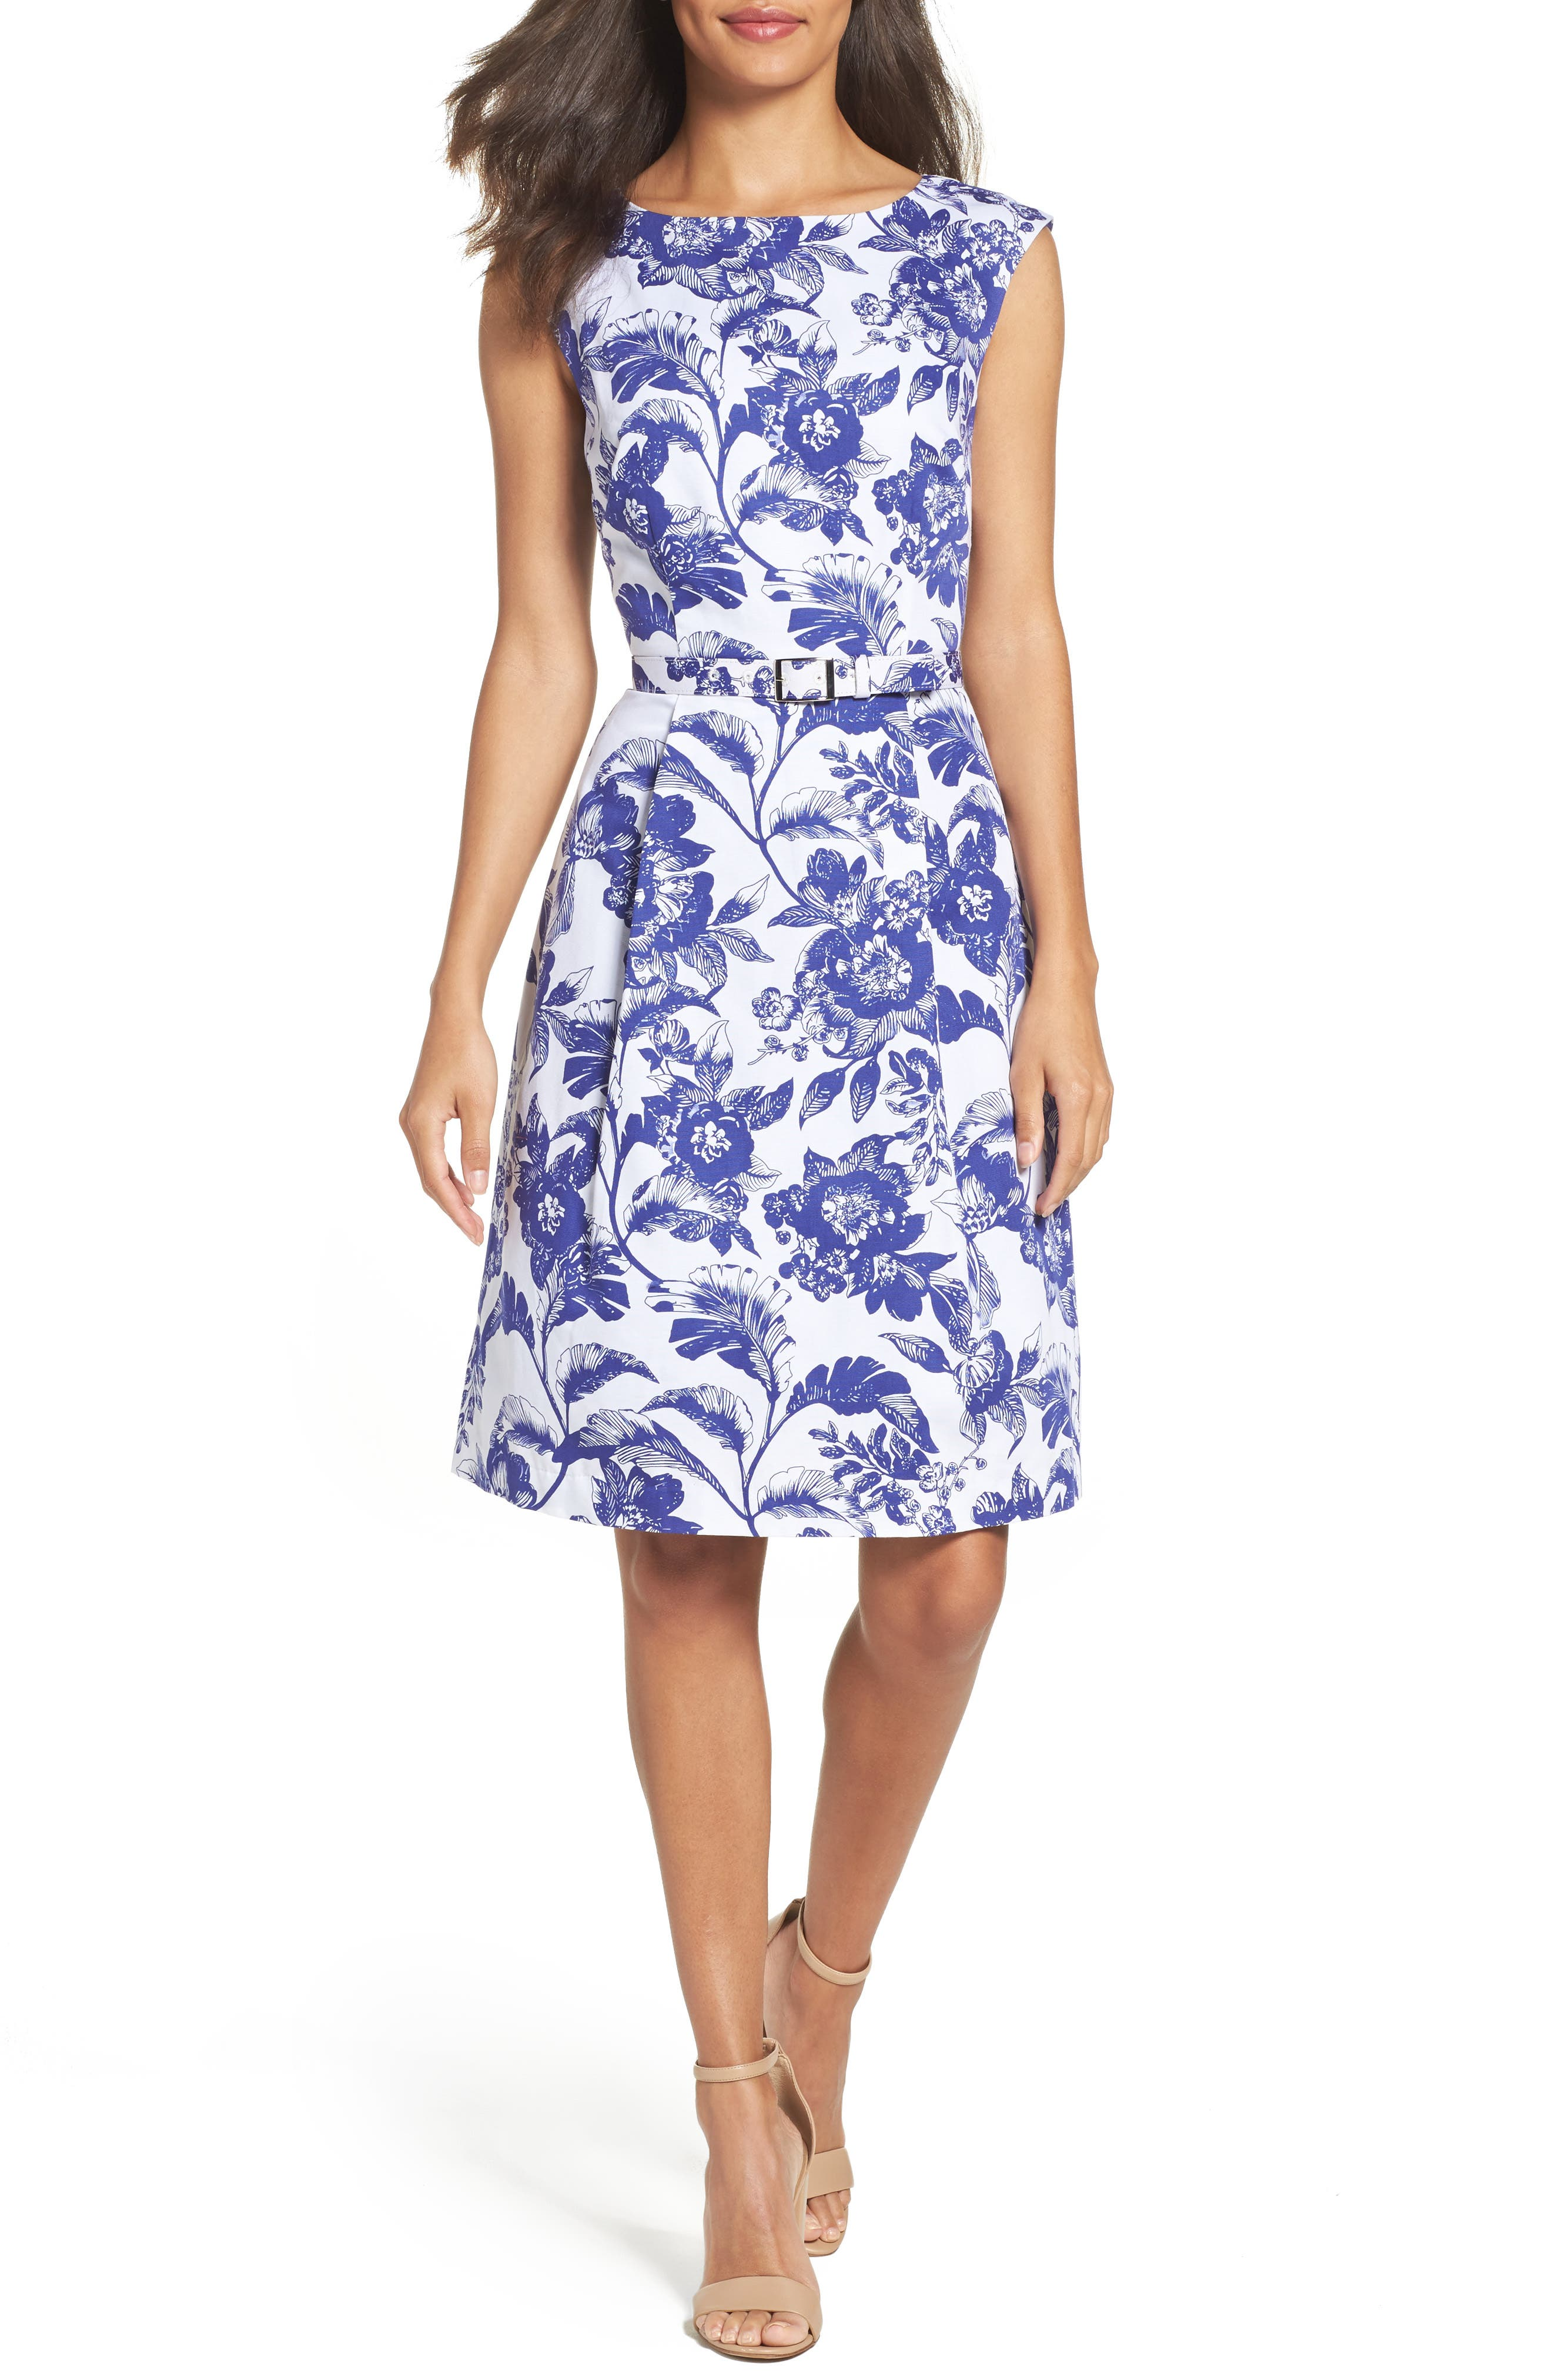 Adrianna Papell Print Fit & Flare Dress (Regular & Petite)